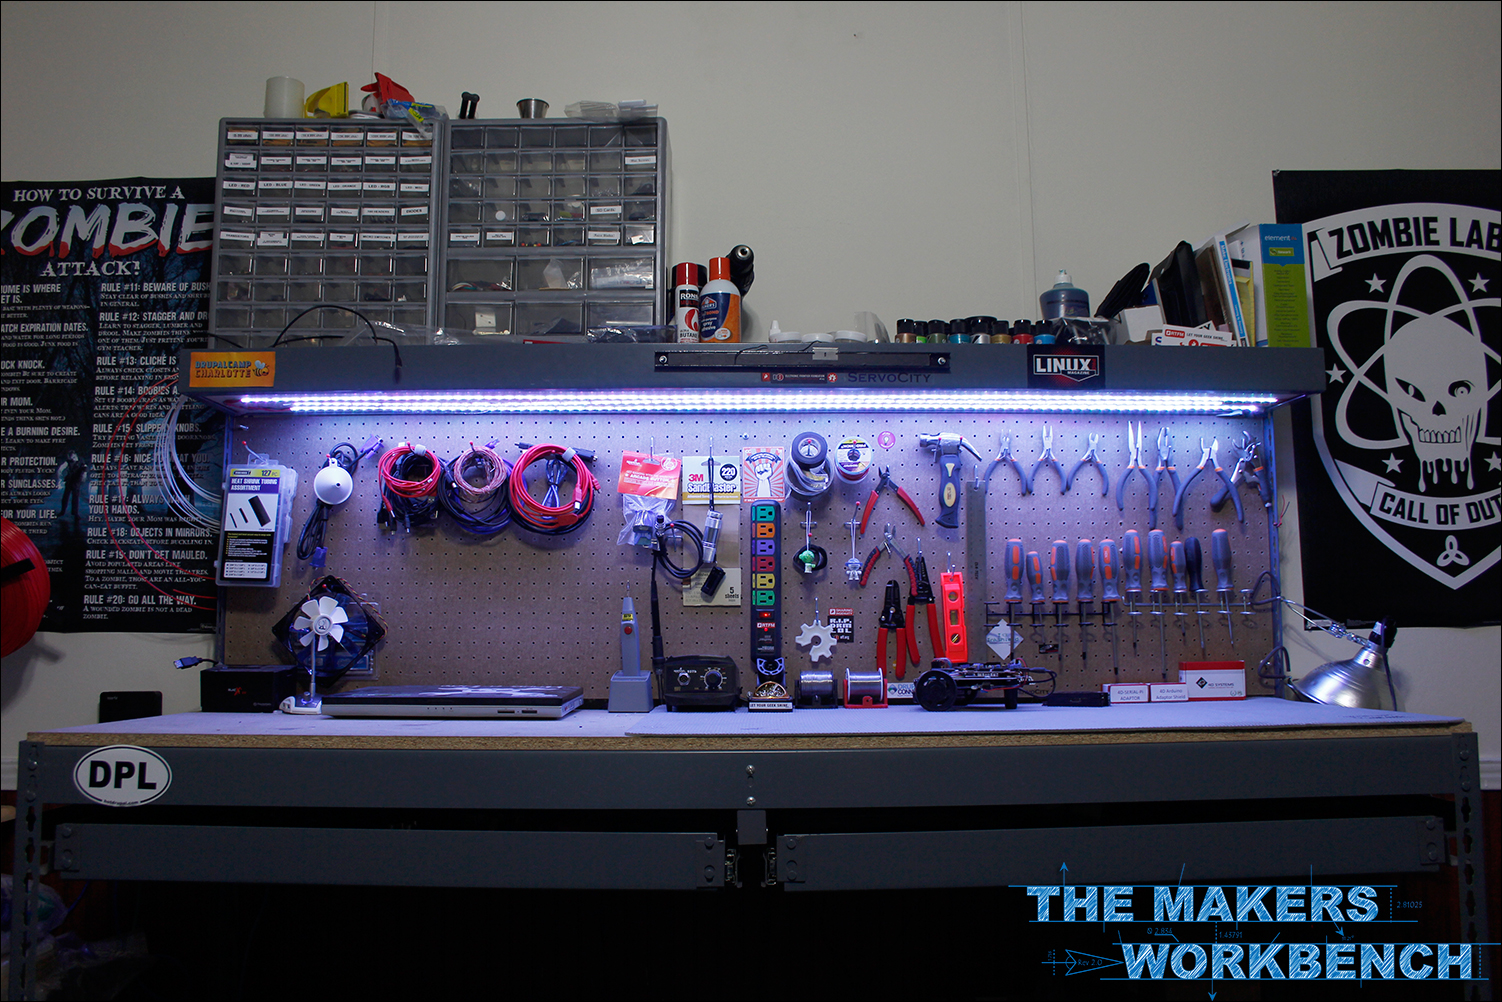 Diy led strip Kitchen Rgb Led Undershelf Bench Lighting The Makers Workbench Rgb Led Undershelf Bench Lighting The Makers Workbench